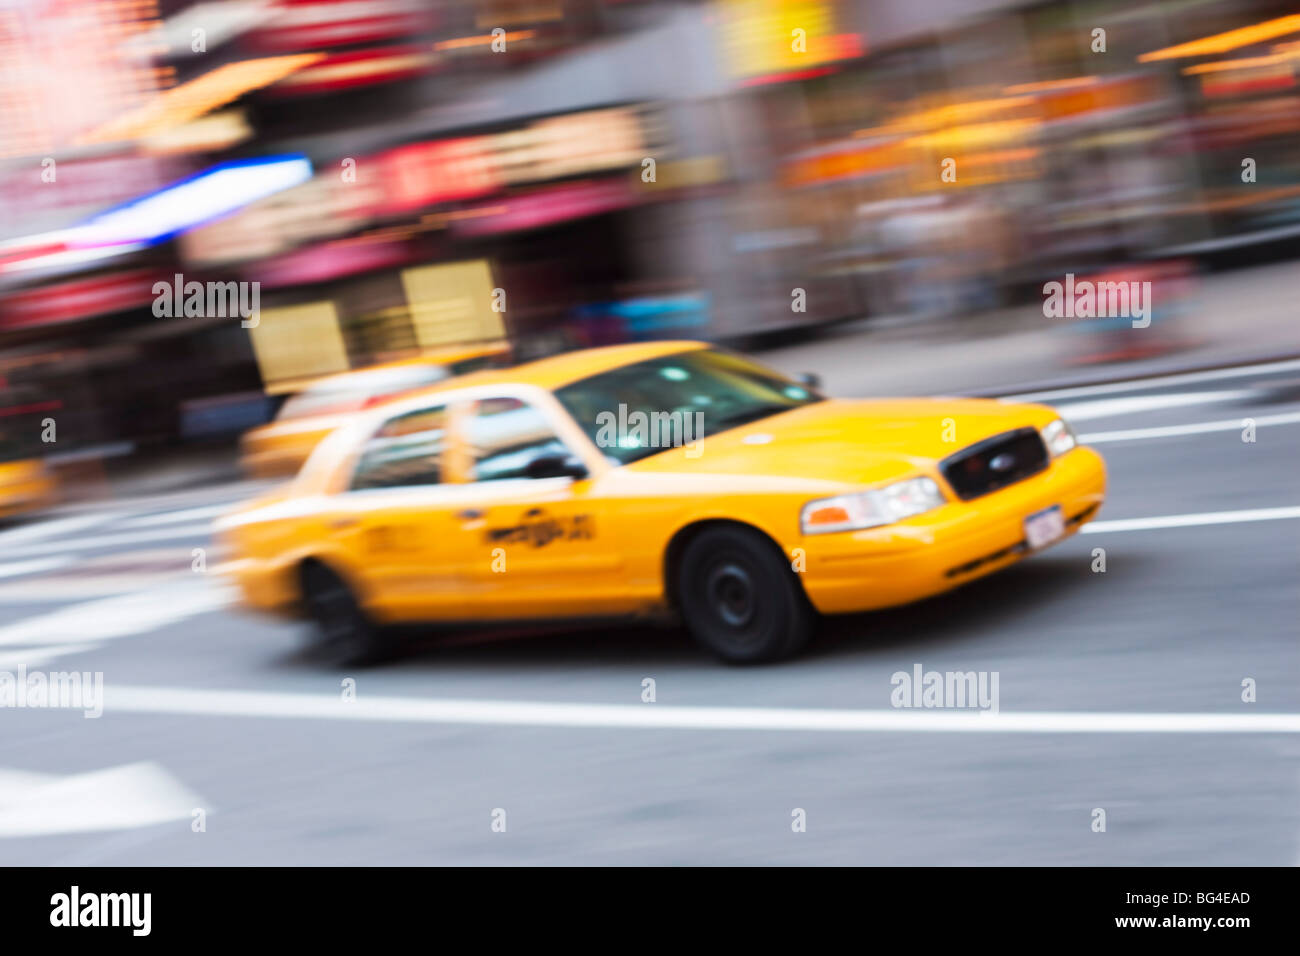 Taxi cabs in Times Square, Midtown, Manhattan, New York City, New York, United States of America, North America - Stock Image